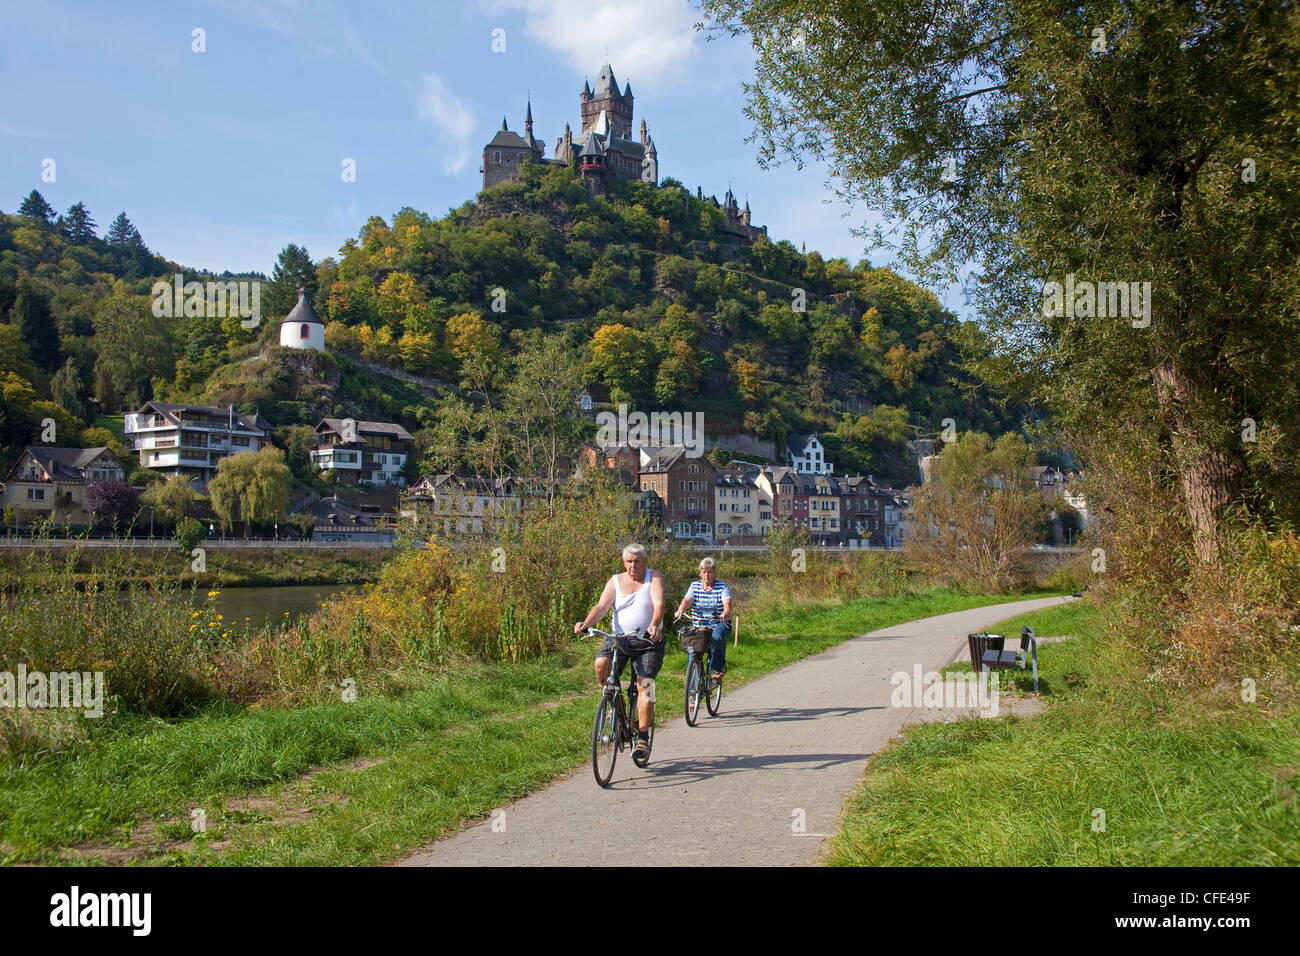 Cyclists on a cycleway at riverside of Moselle river, Cochem with castle, Rhineland-Palatinate, Germany, Europe - Stock Image